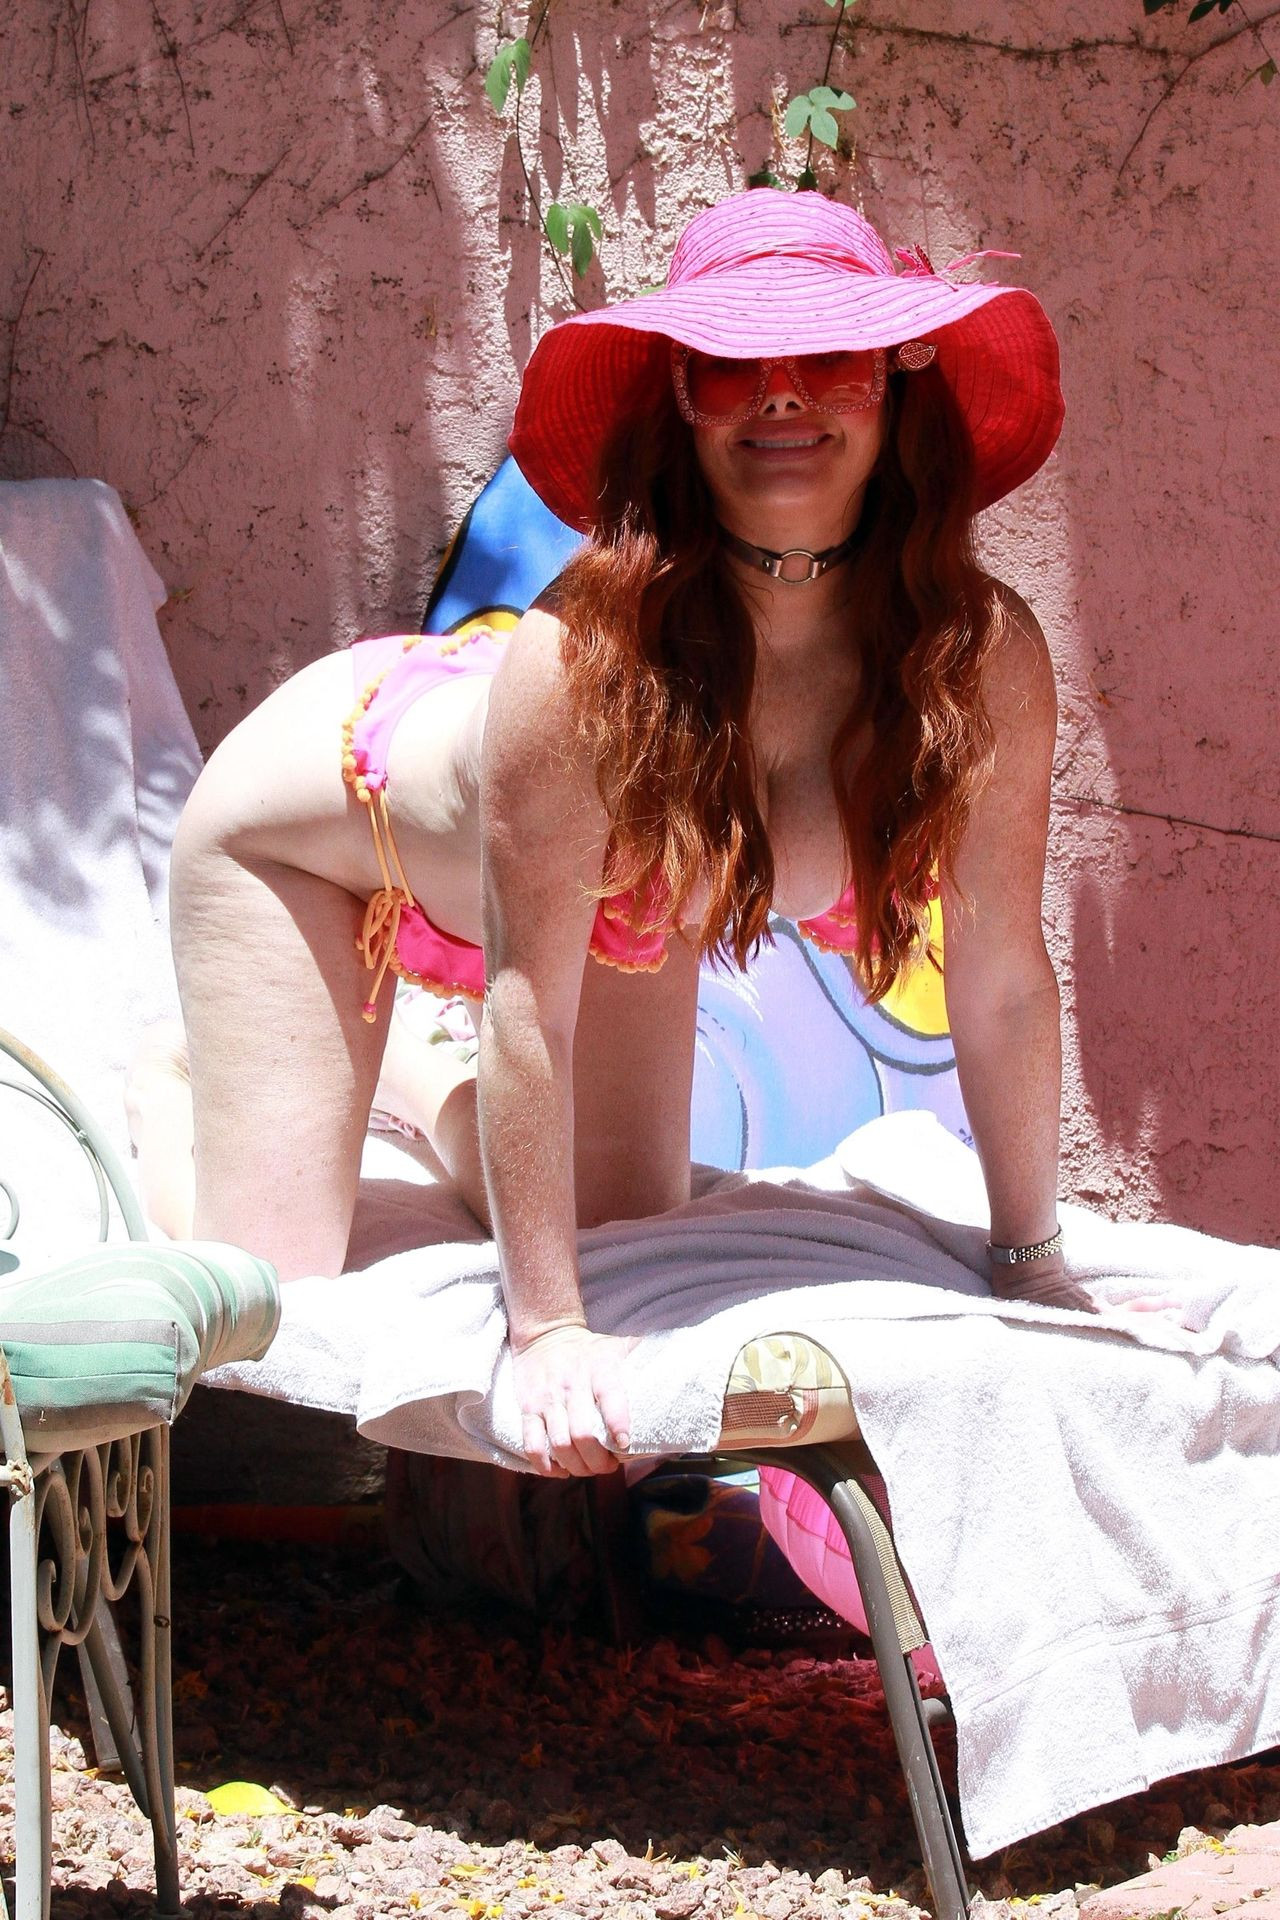 Phoebe Price Sexy fappenings.com 16 3